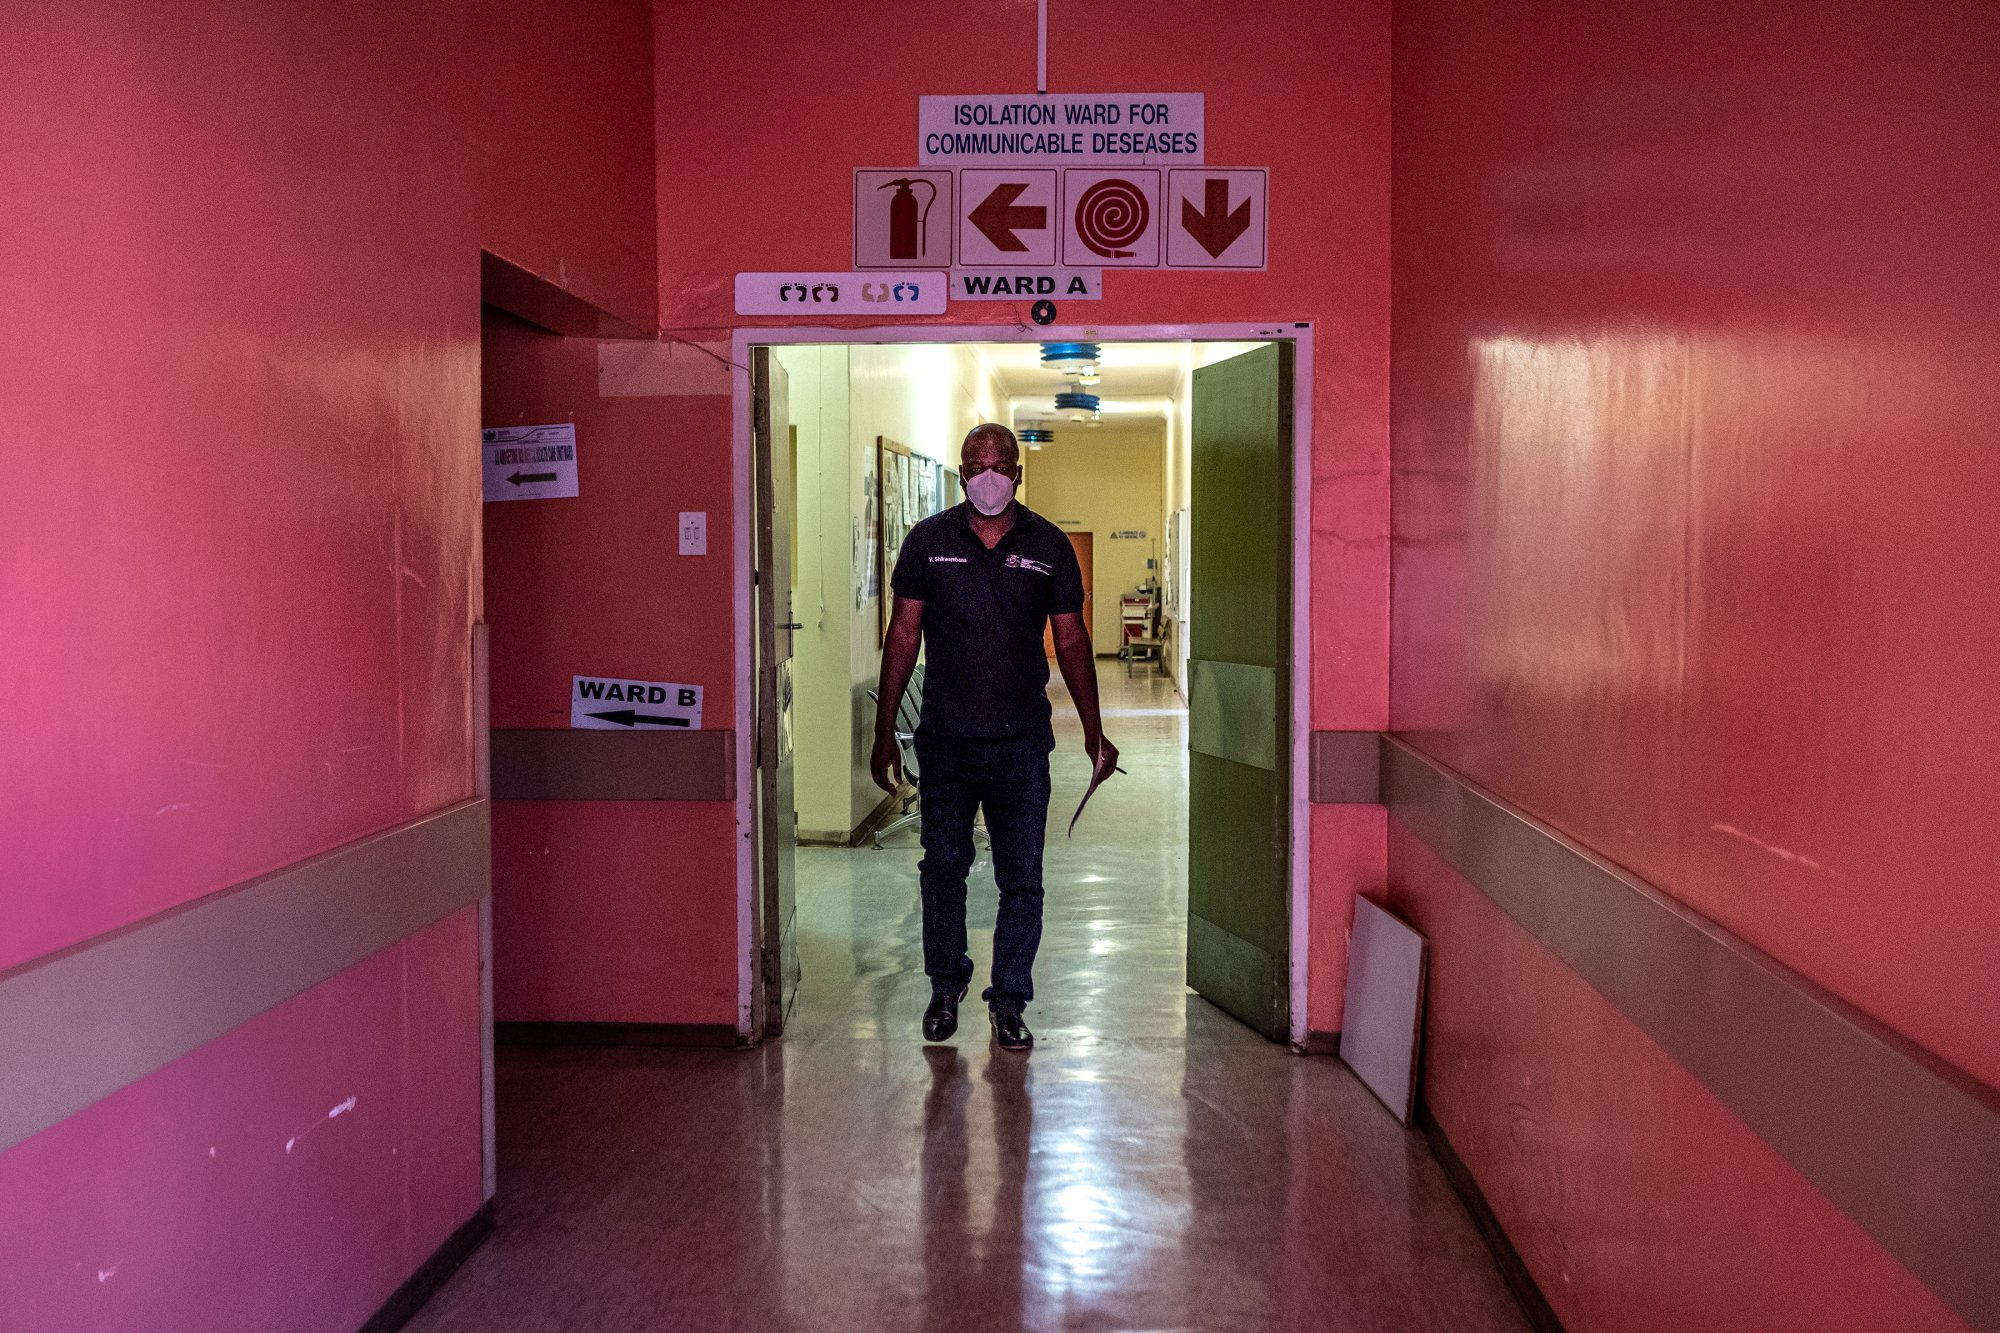 Specialist ICU Nurse Vicky Shikwambana, who is also the COVID-19 Ward Manager walks through the corridors of the Taung Hospital in Taung, the North West Province, South Africa, on Sept. 4, 2020. | Thomson Reuters Foundation/Gulshan Khan